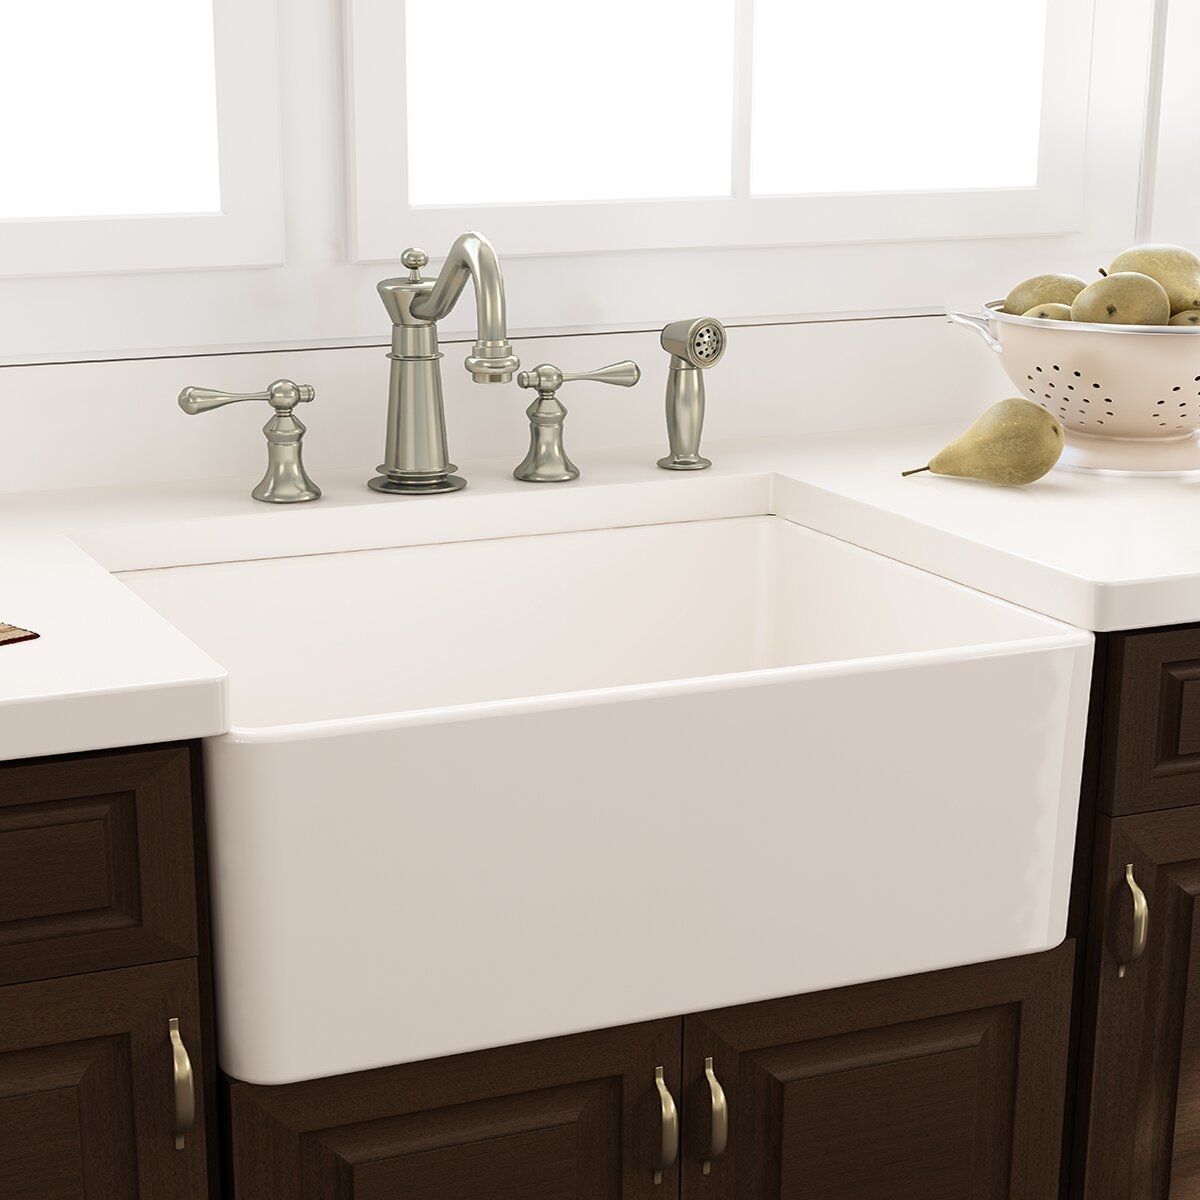 "Nantucket Sinks 30.25"" X 18"" Fireclay Farmhouse Kitchen"